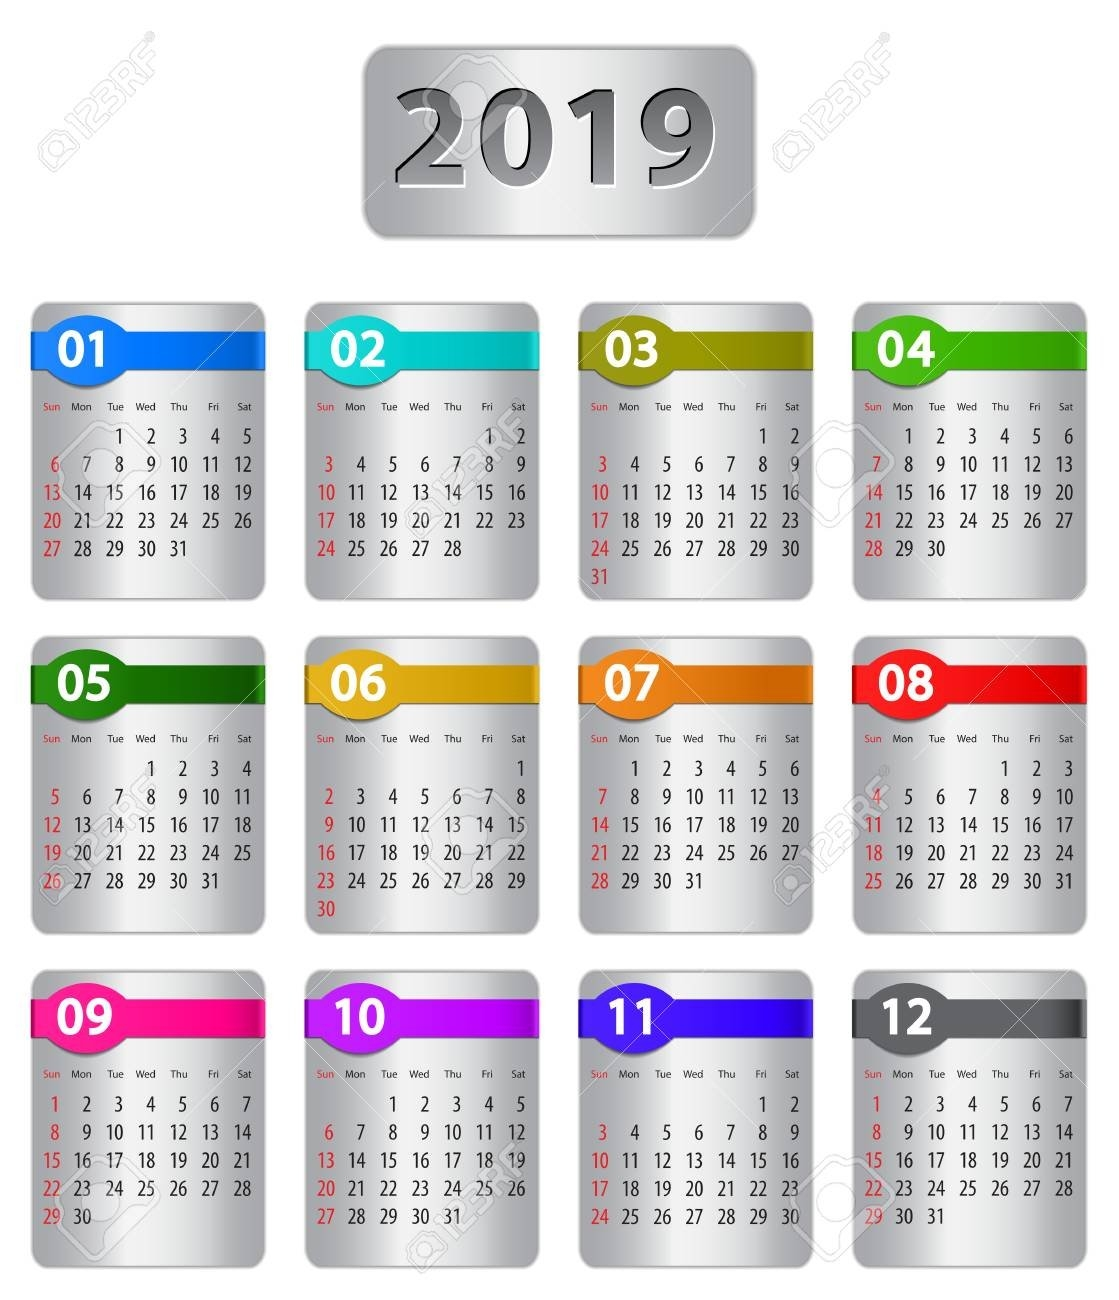 Calendar For 2019 Year With Colorful Stickers. Vector Illustration Calendar 2019 Stickers